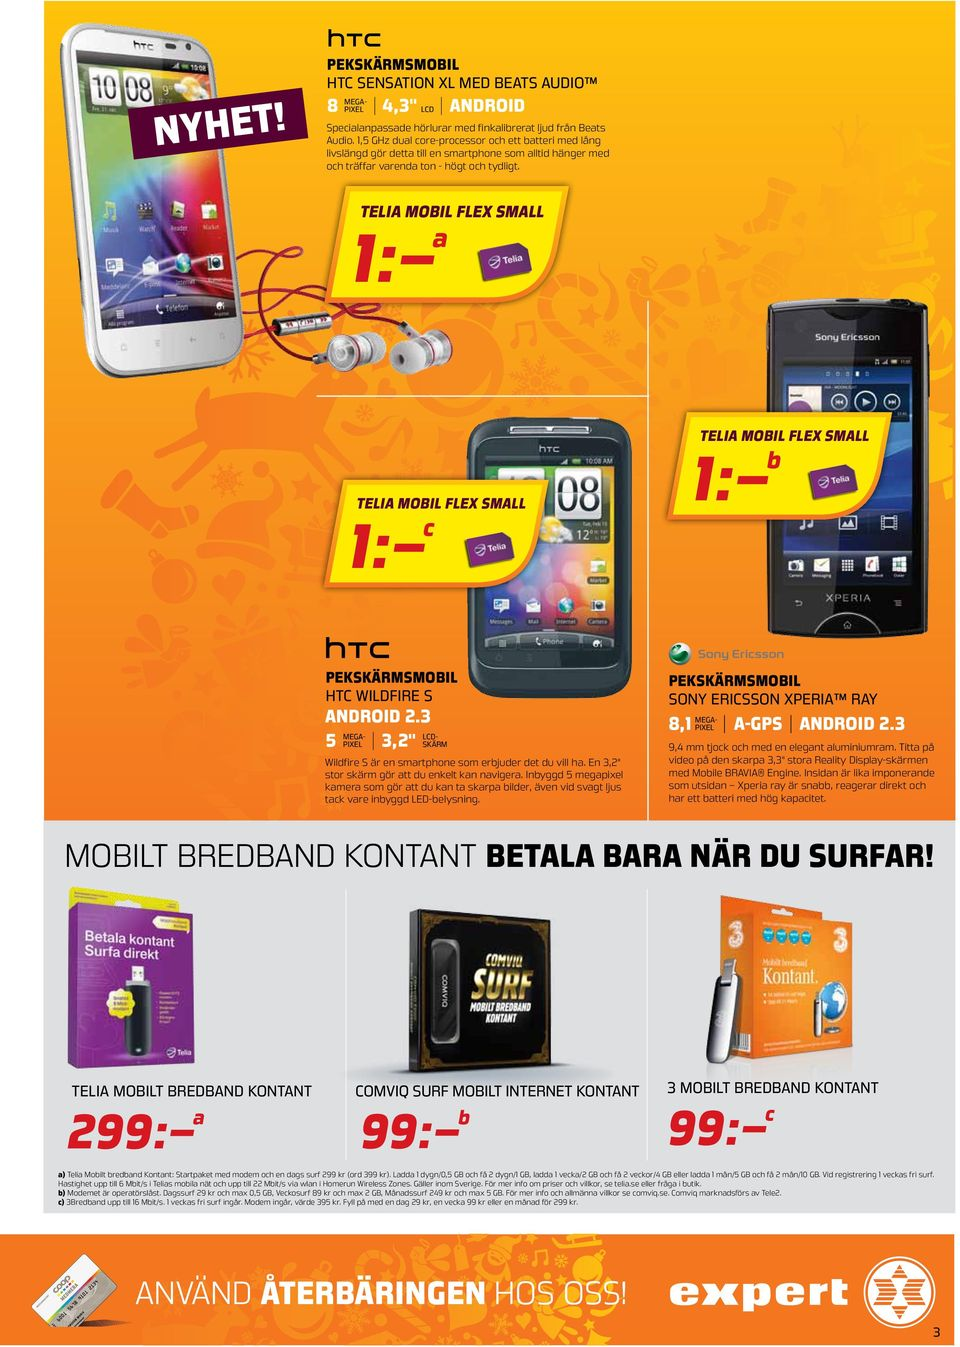 Telia mobil flex small 1: a Telia mobil flex small 1: b Telia mobil flex small 1: c pekskärmsmobil HTC WILDFIRE s android 2.